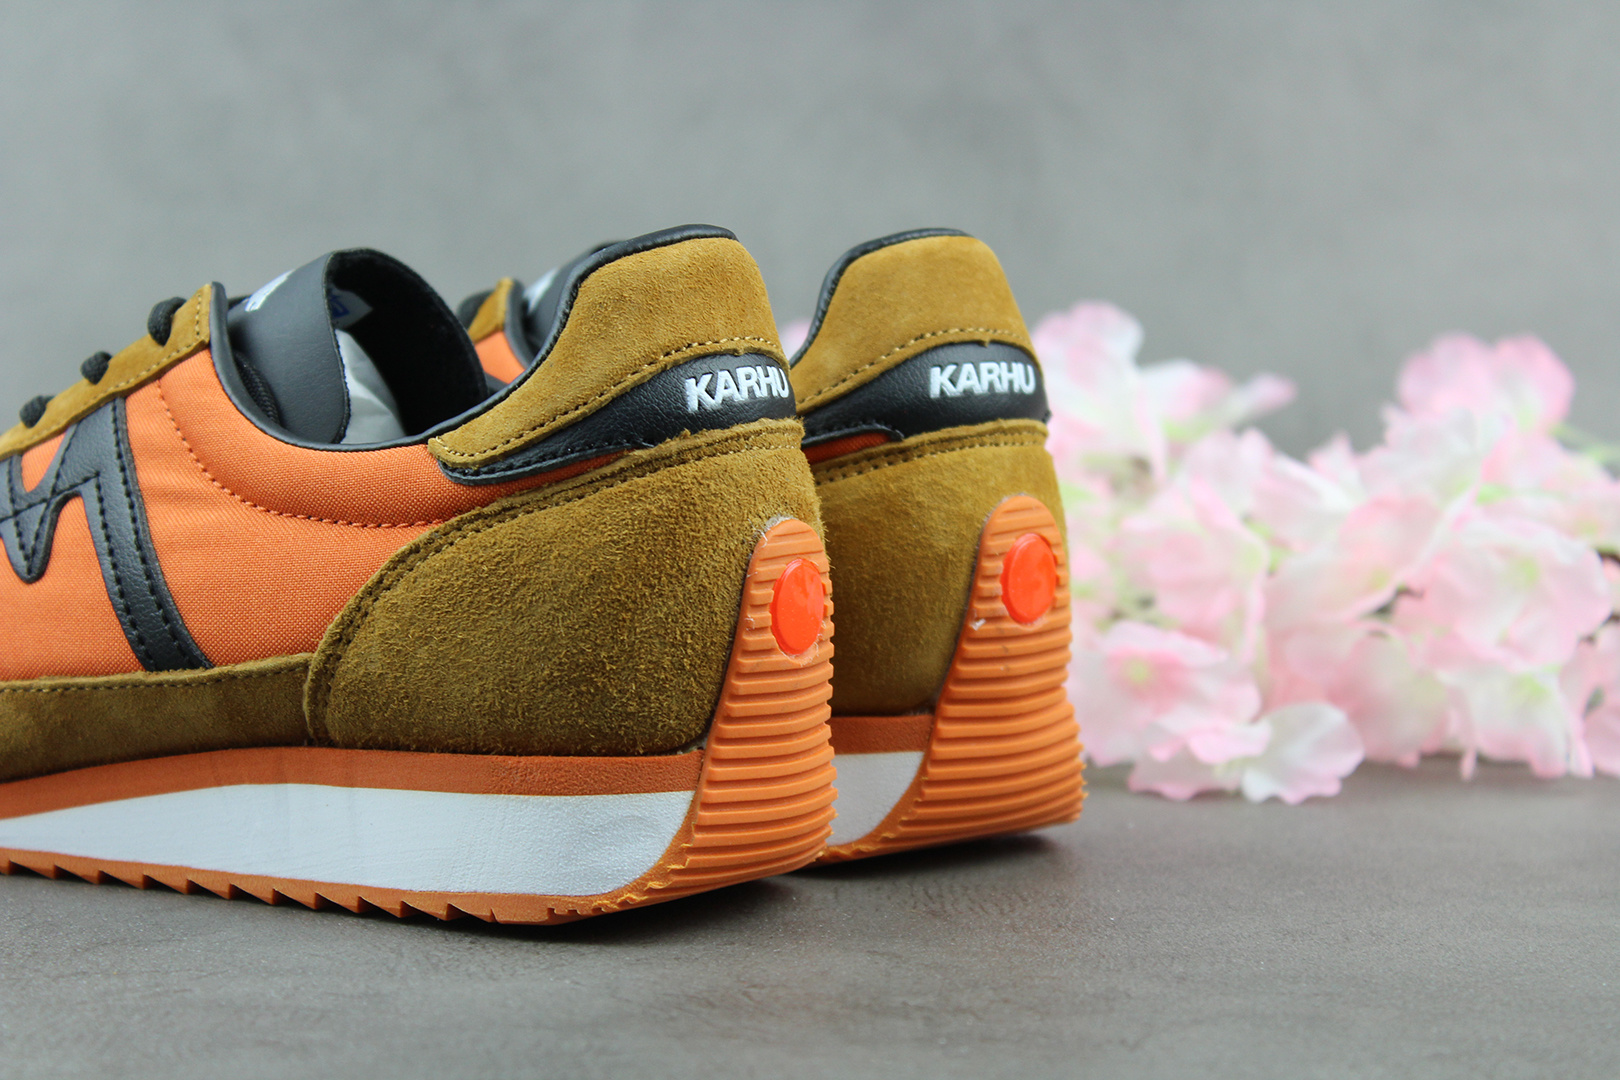 Karhu ChampionAir (Jaffa Orange/Black) F805001